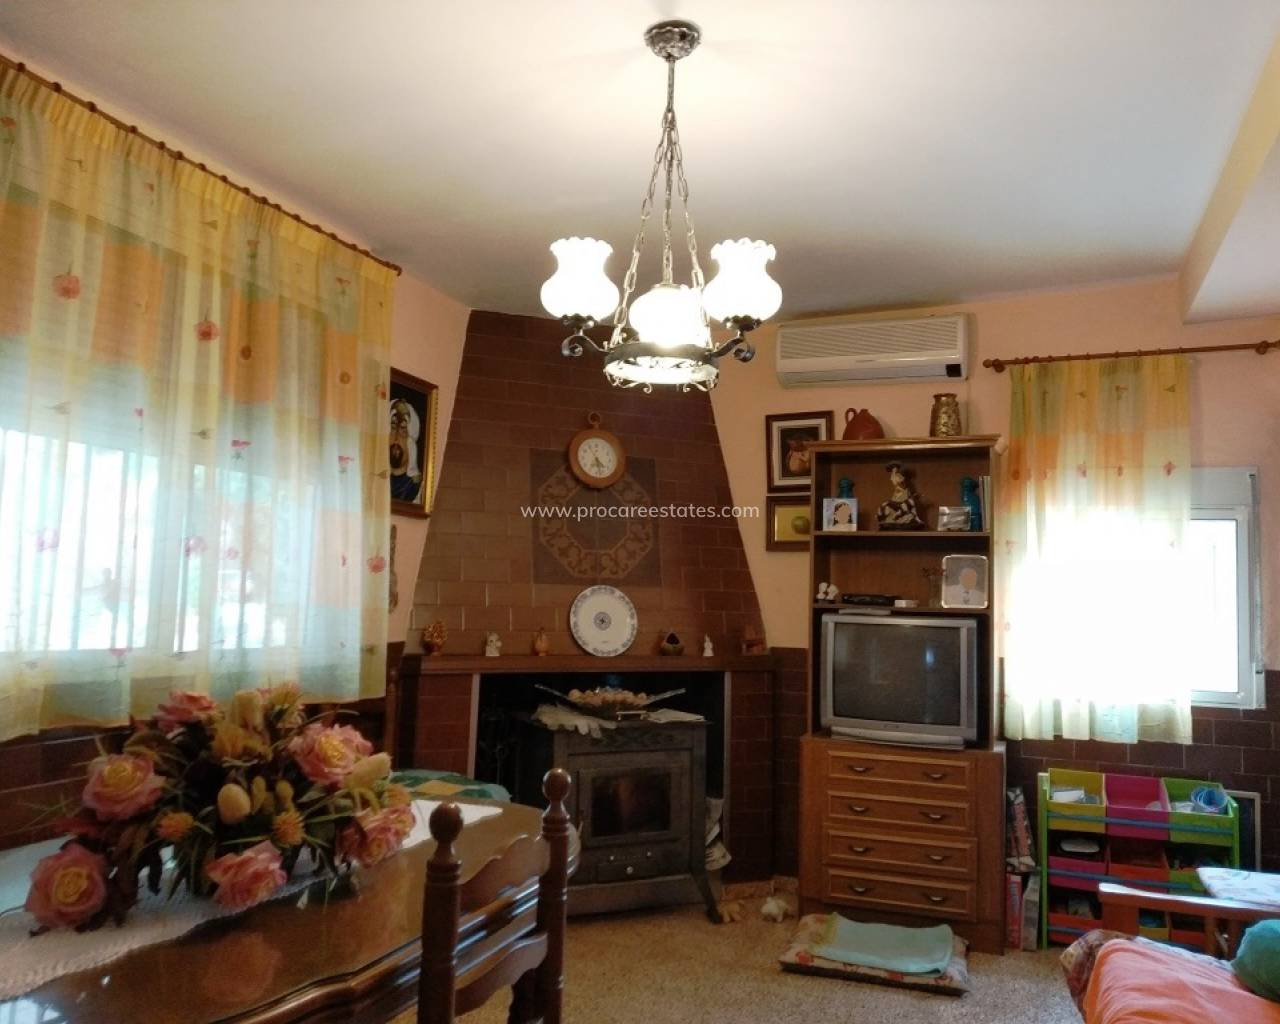 Revente - Country Property - Benilloba